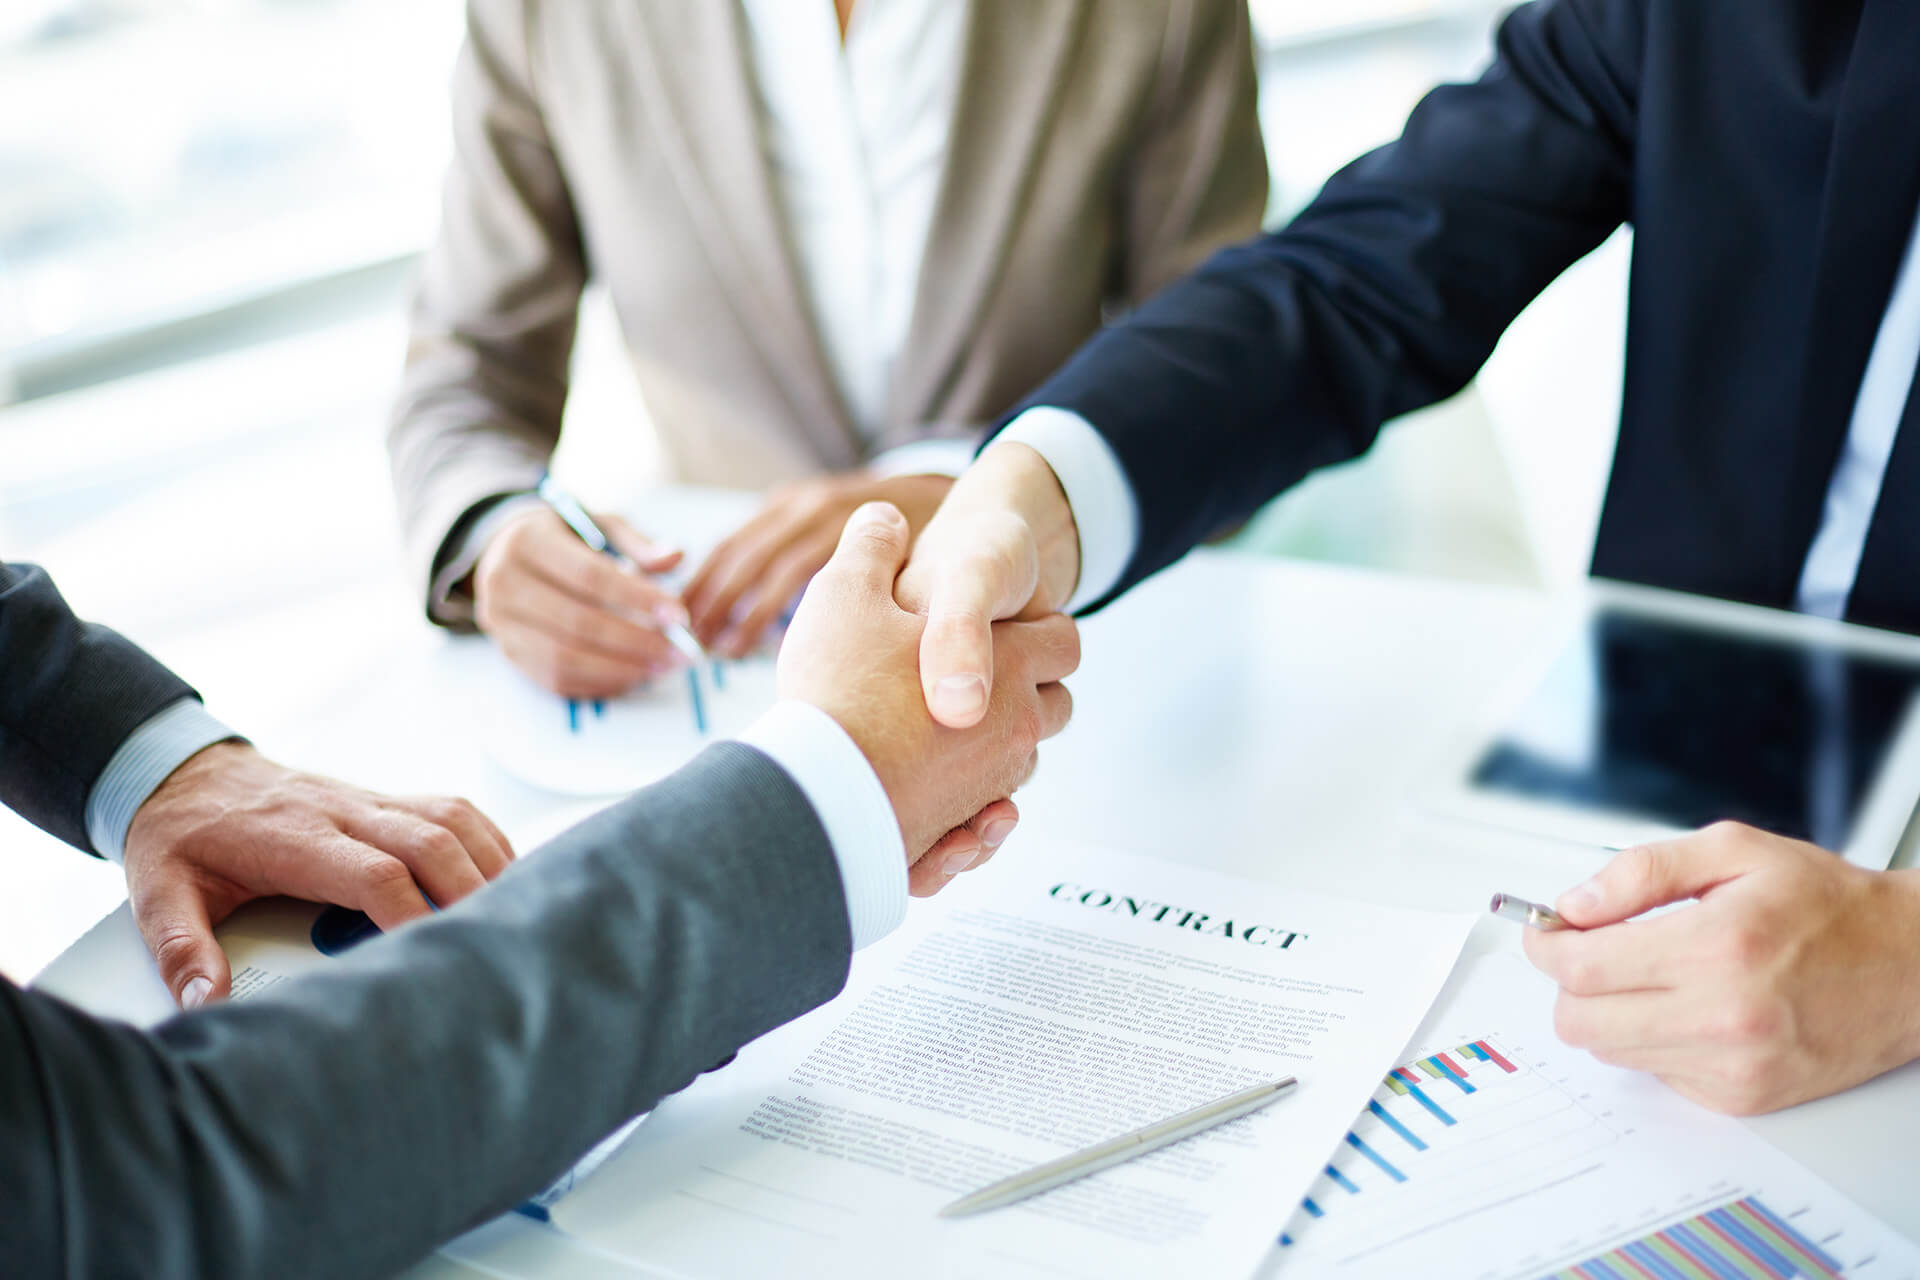 Japanese Financial Giant SBI and SMFG to Partner for Digital Banking